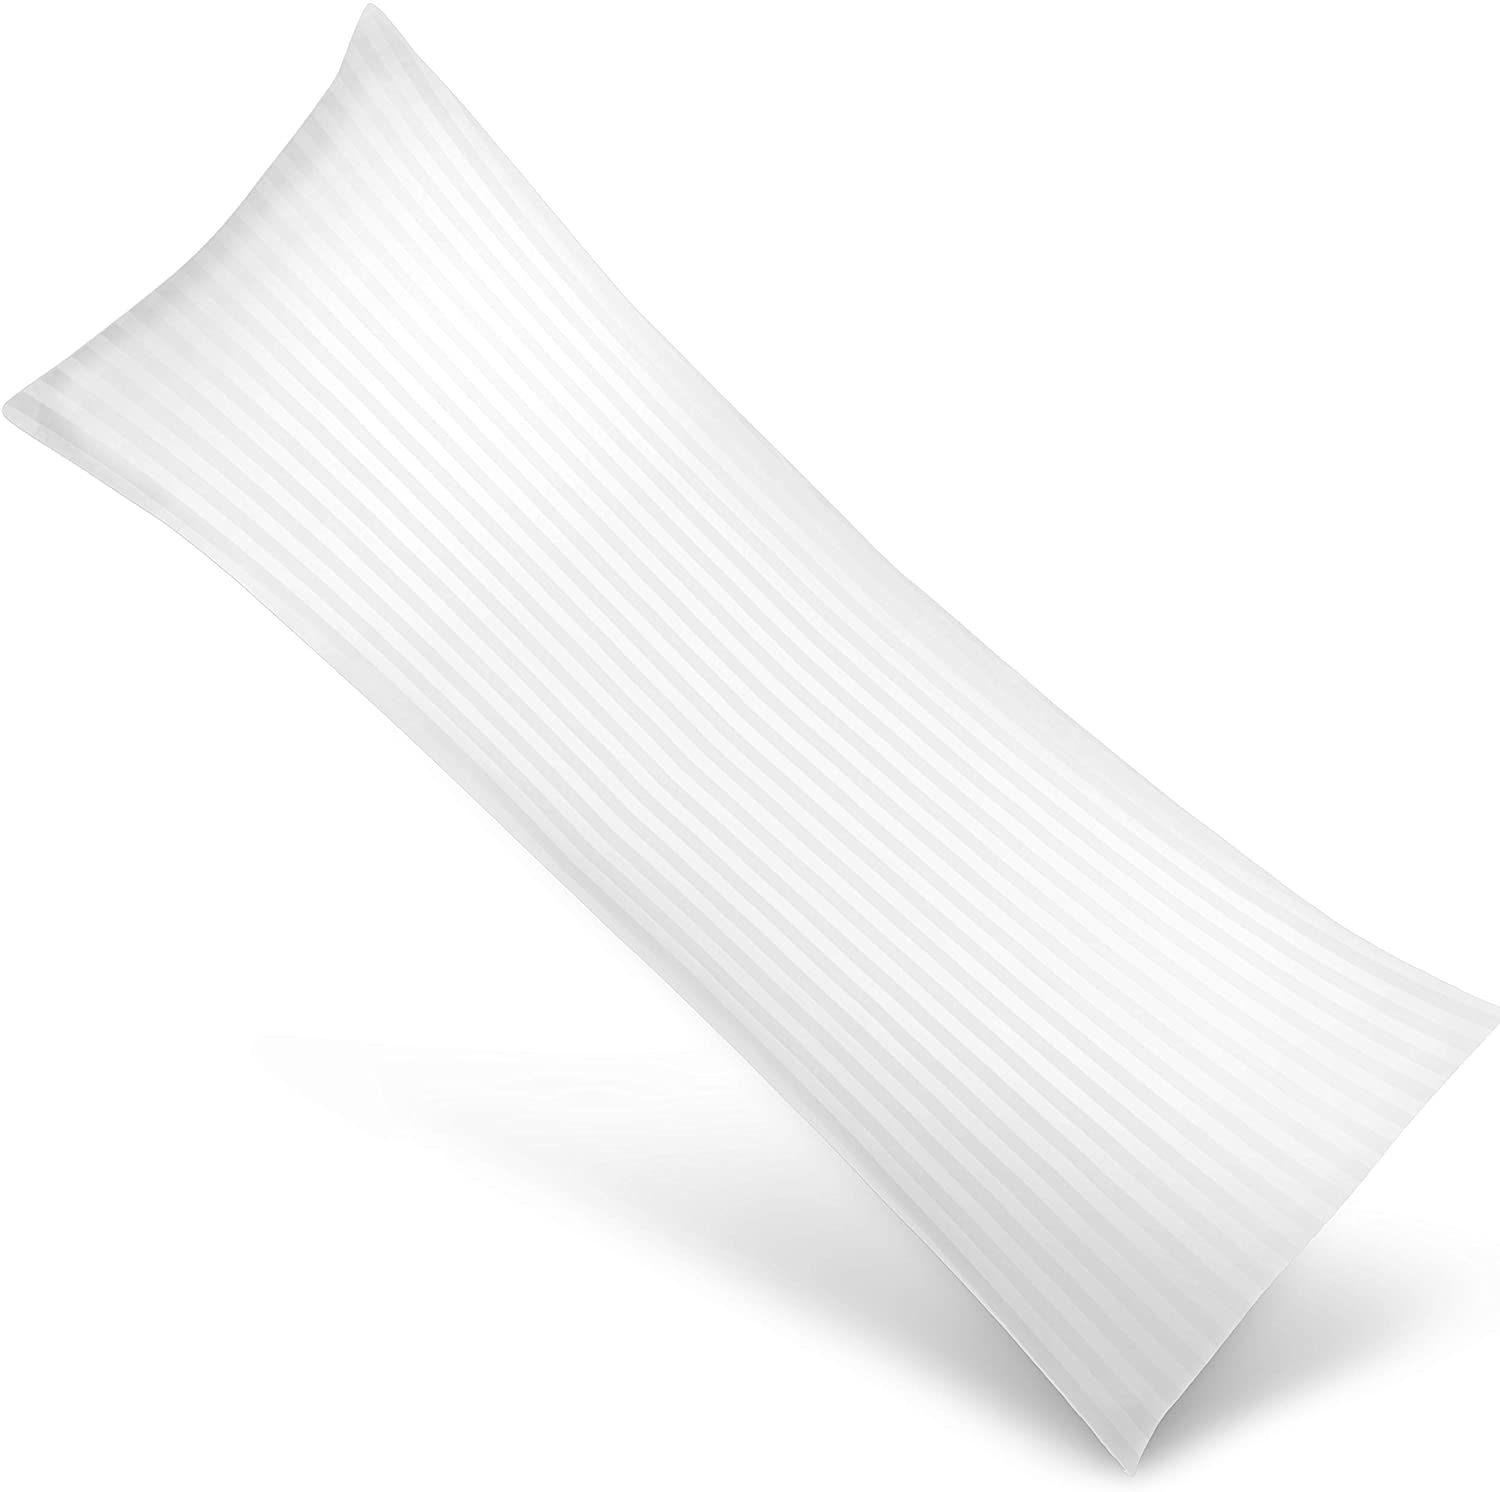 Utopia Bedding Soft Body Pillow - Long Pillows for Side and Back Sleepers - Cotton Blend Cover with Soft Polyester Filling (Single Pack) 20x54 Inch